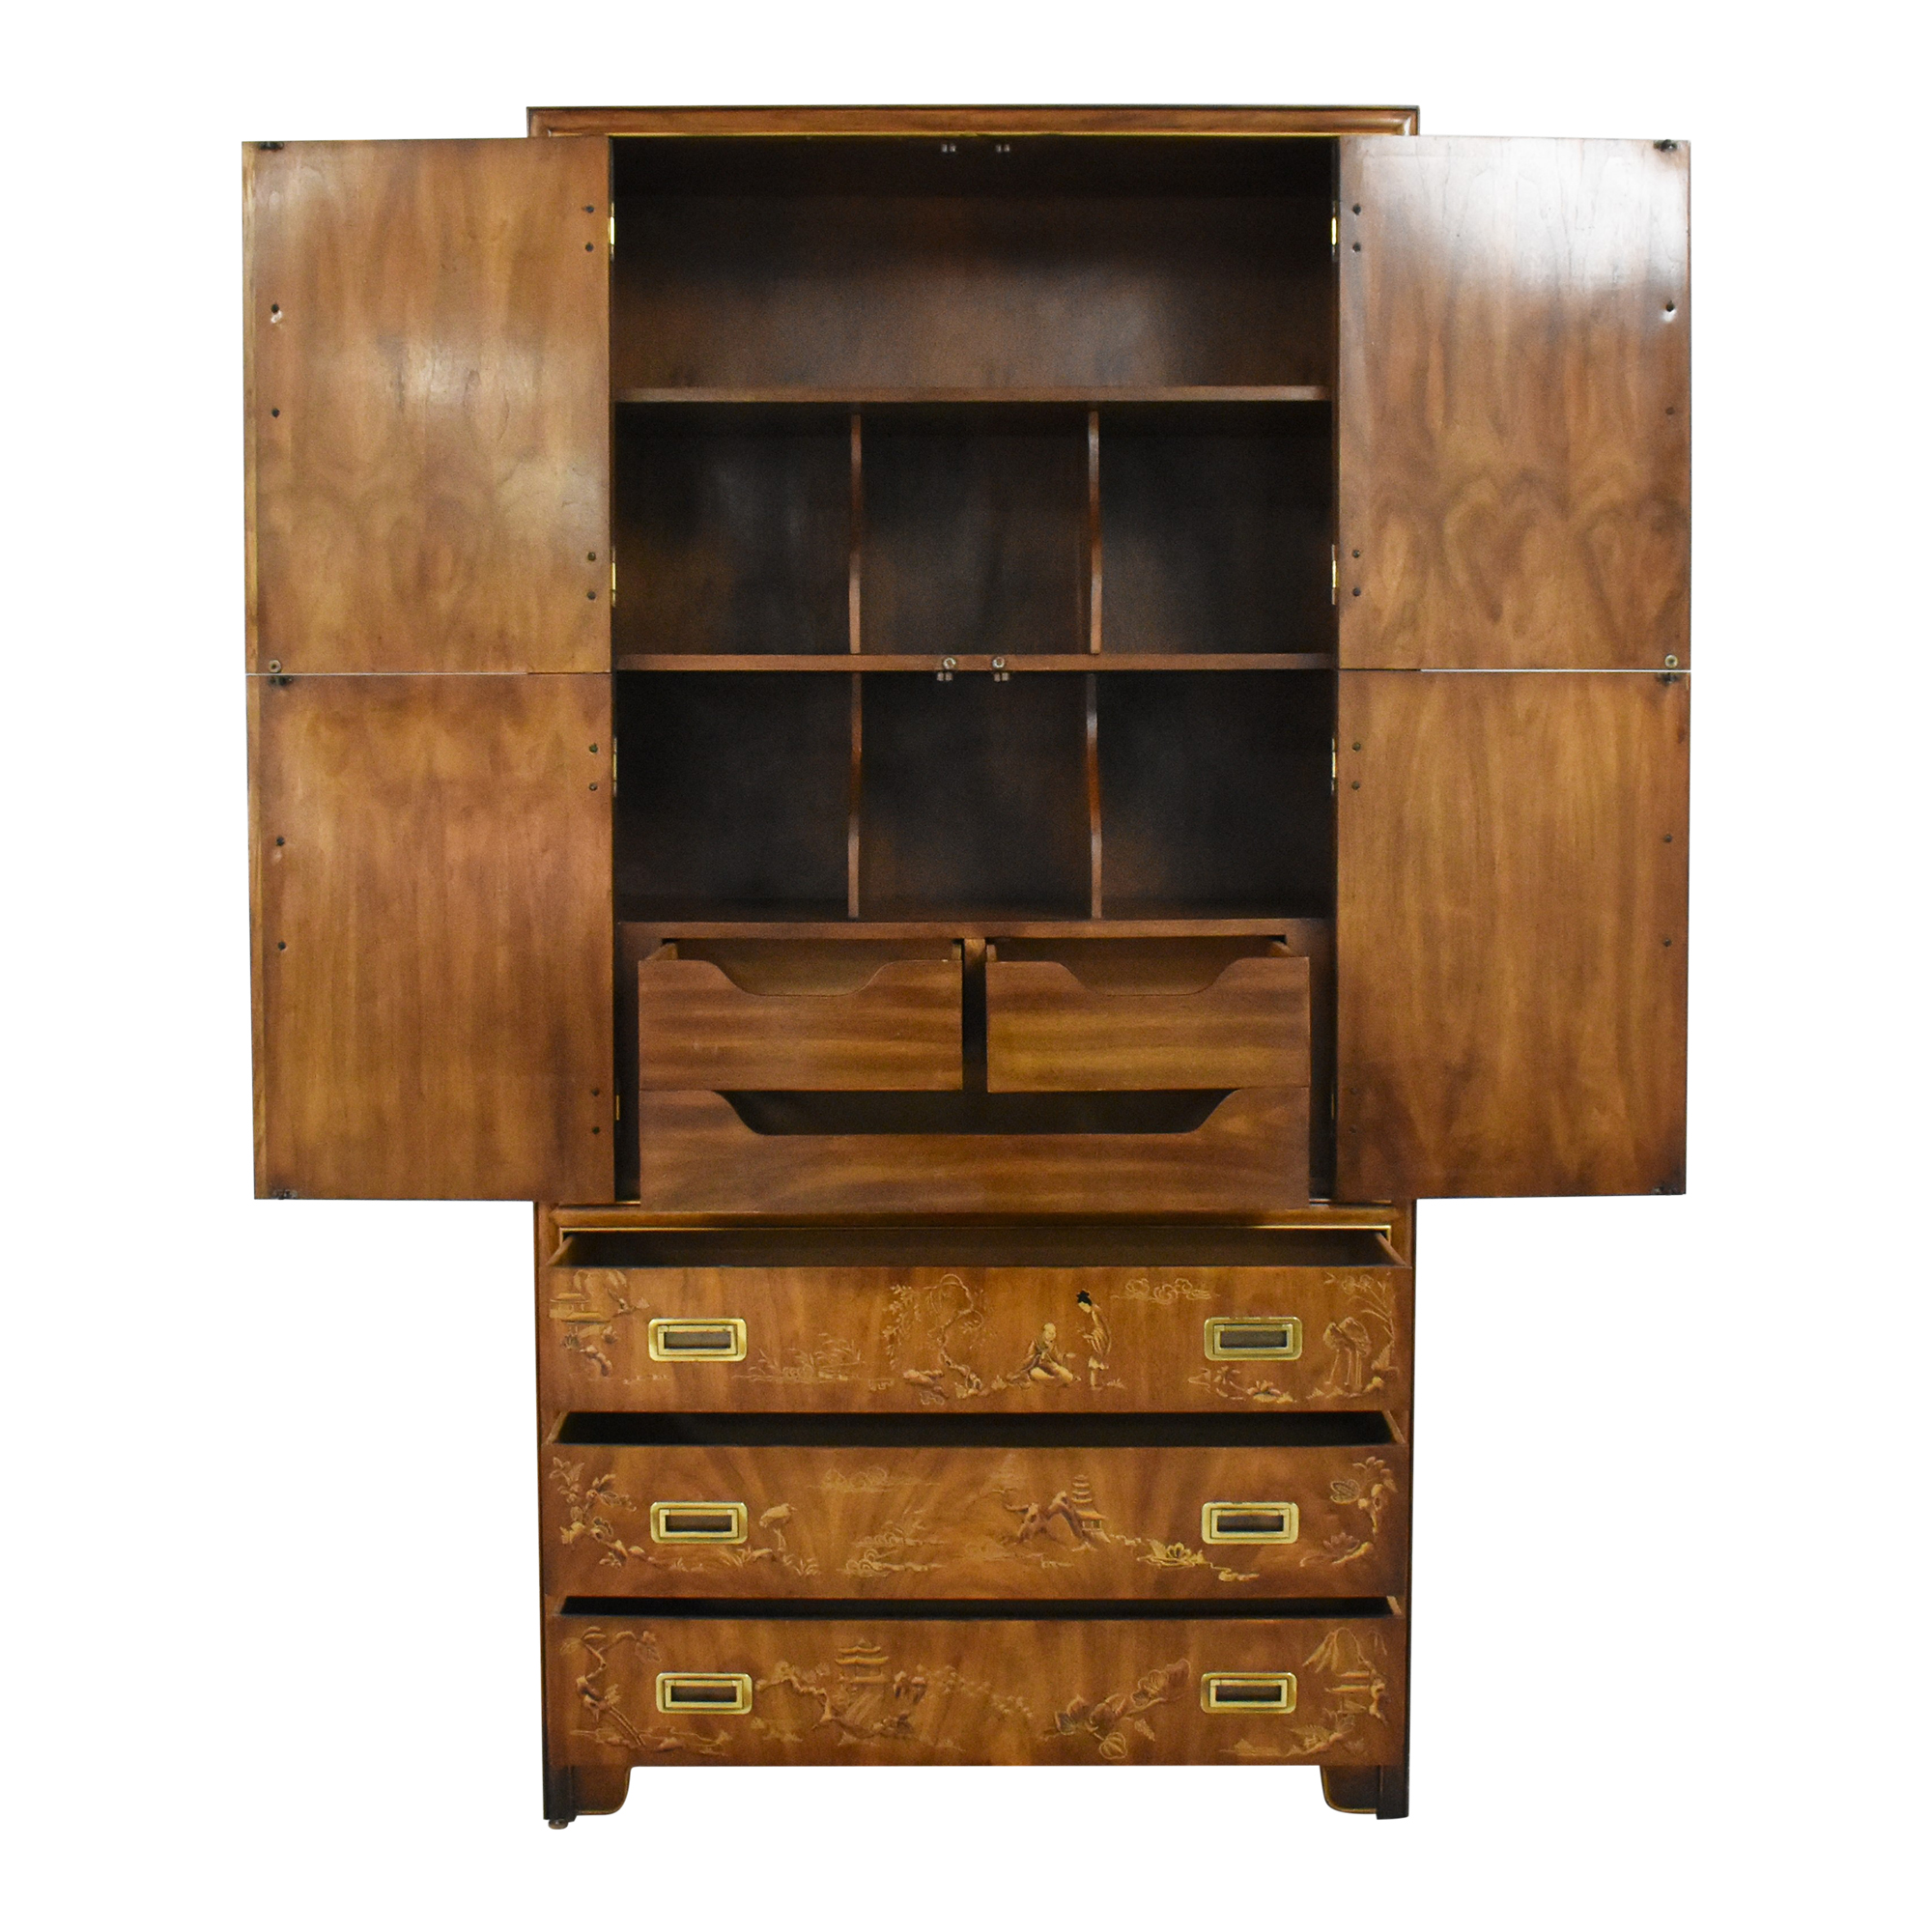 Drexel Heritage Drexel Heritage Dynasty Collection Campaign Armoire ma